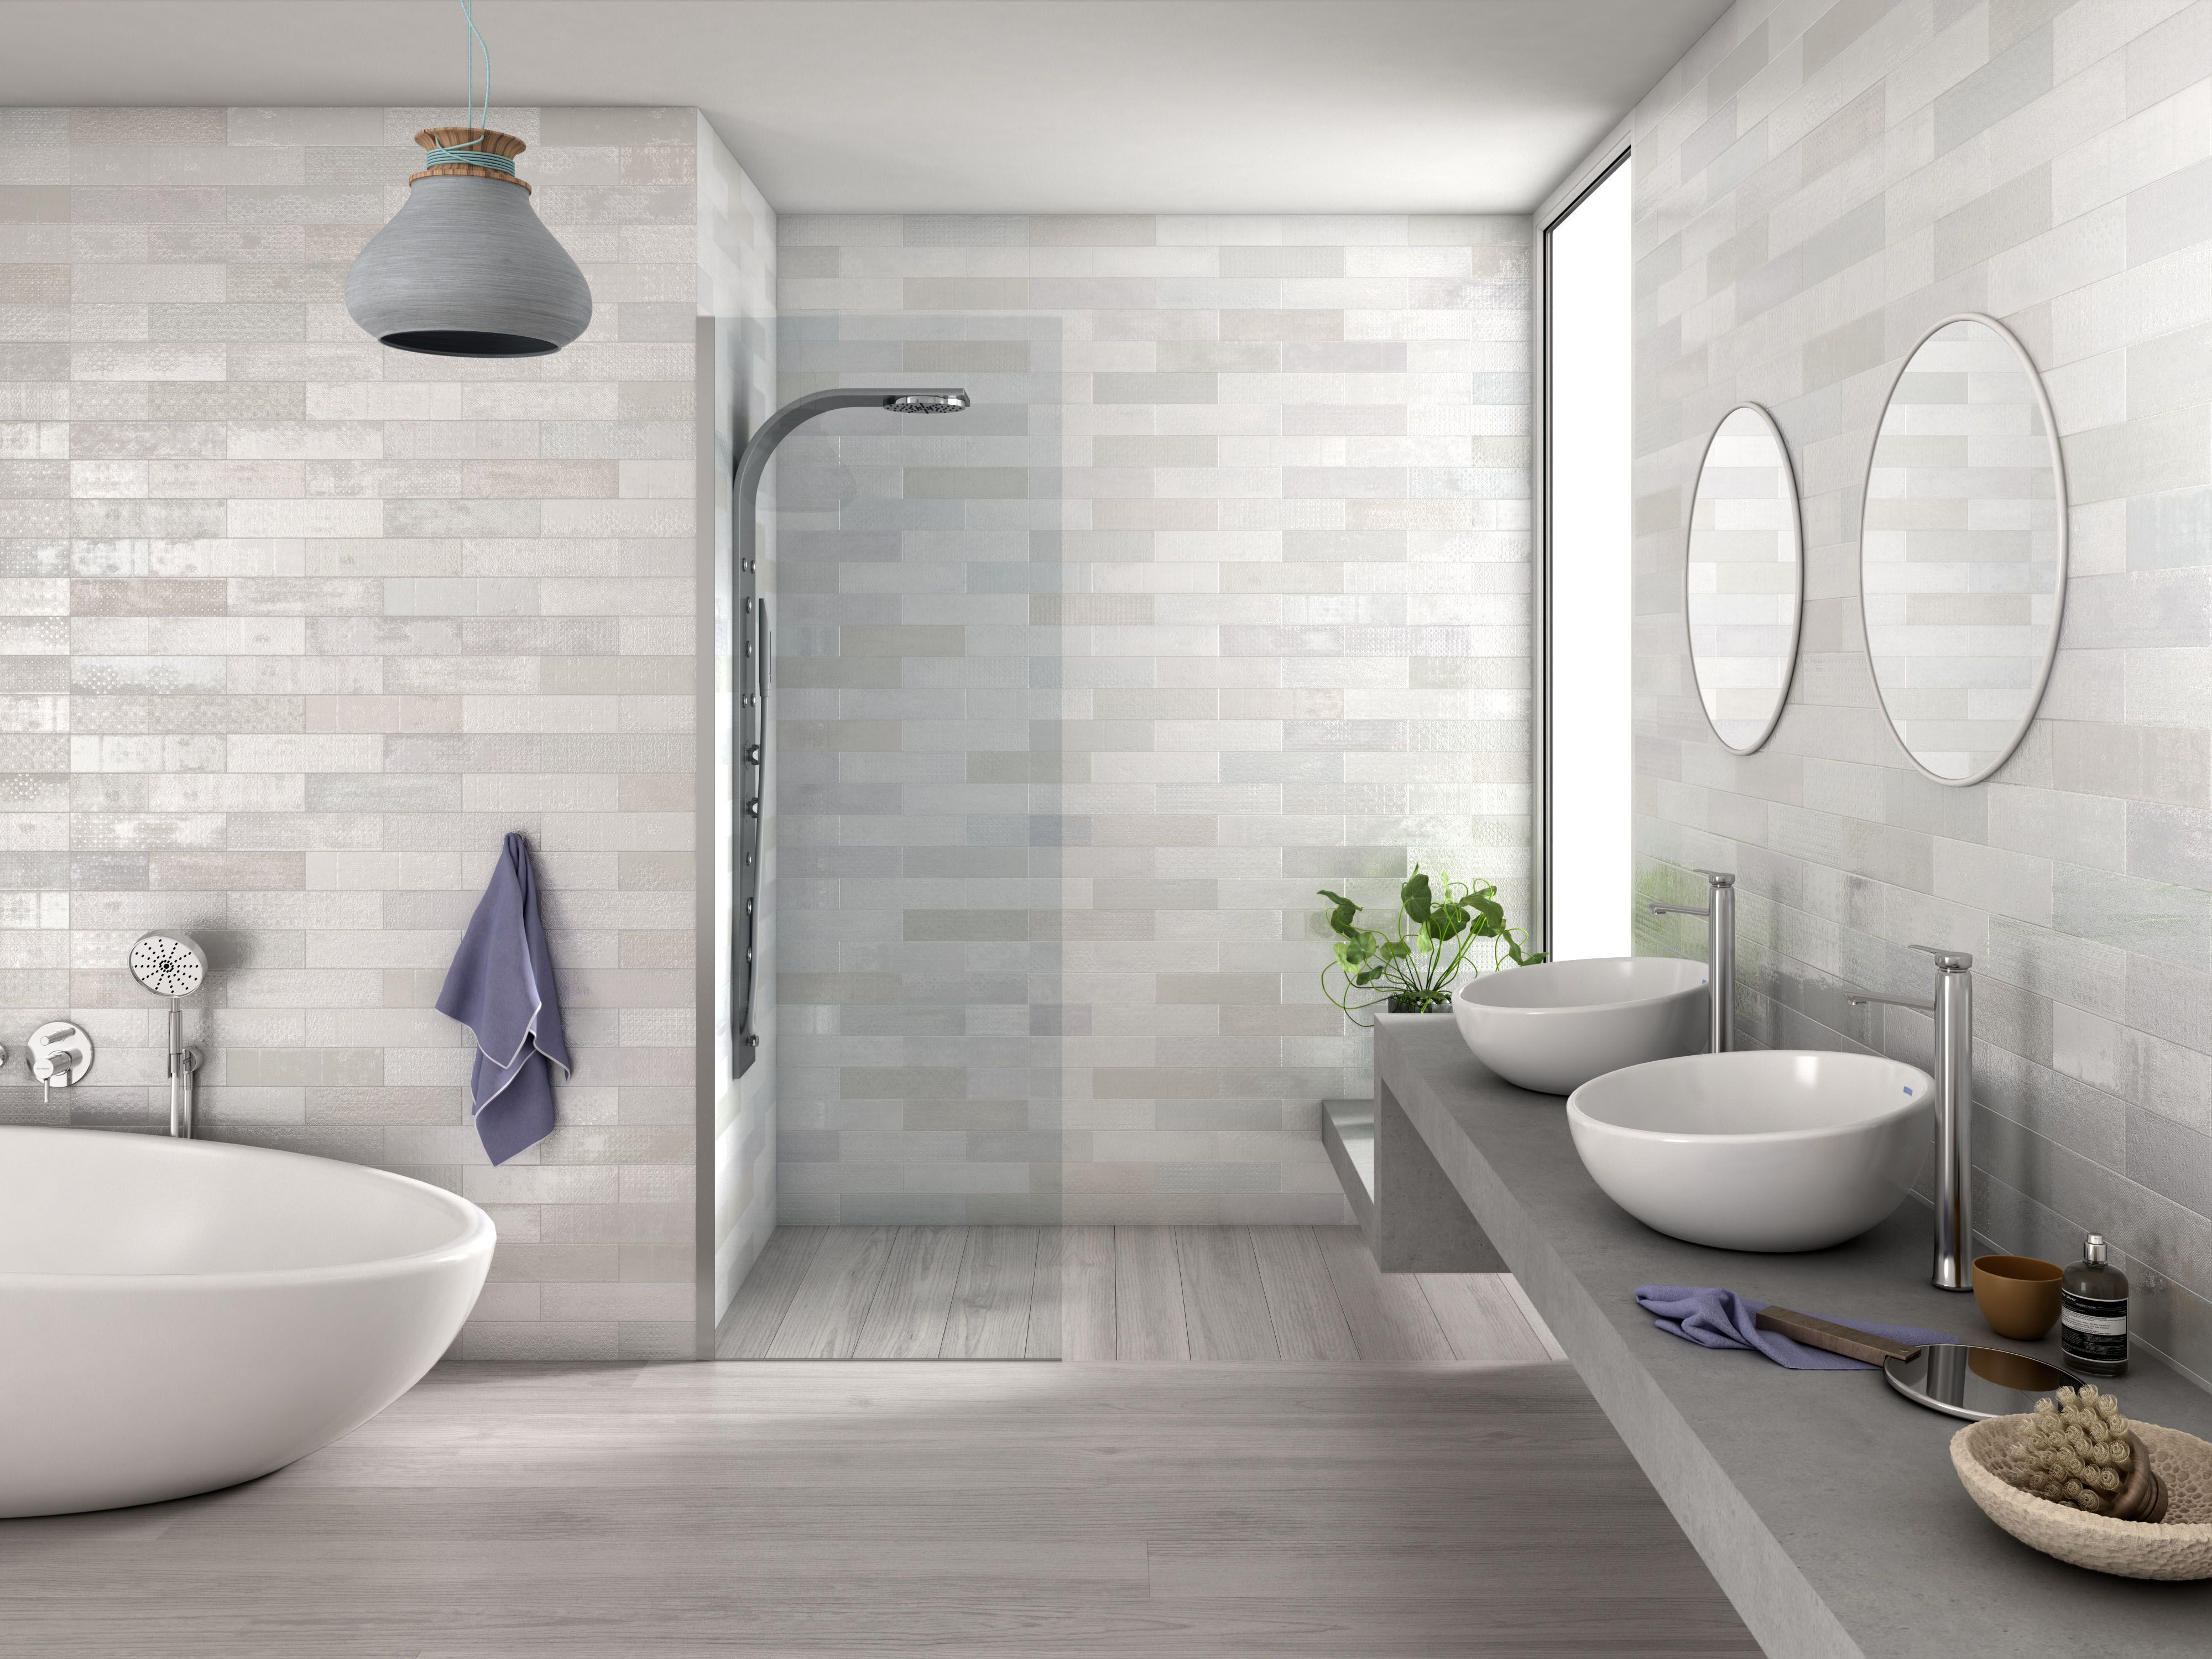 Boonthavorn This Relaxing Bathroom Design Inspired By Semi Polished White Ceramic Wall Tiles Relaxing Bathroom Tile Bathroom Bathroom